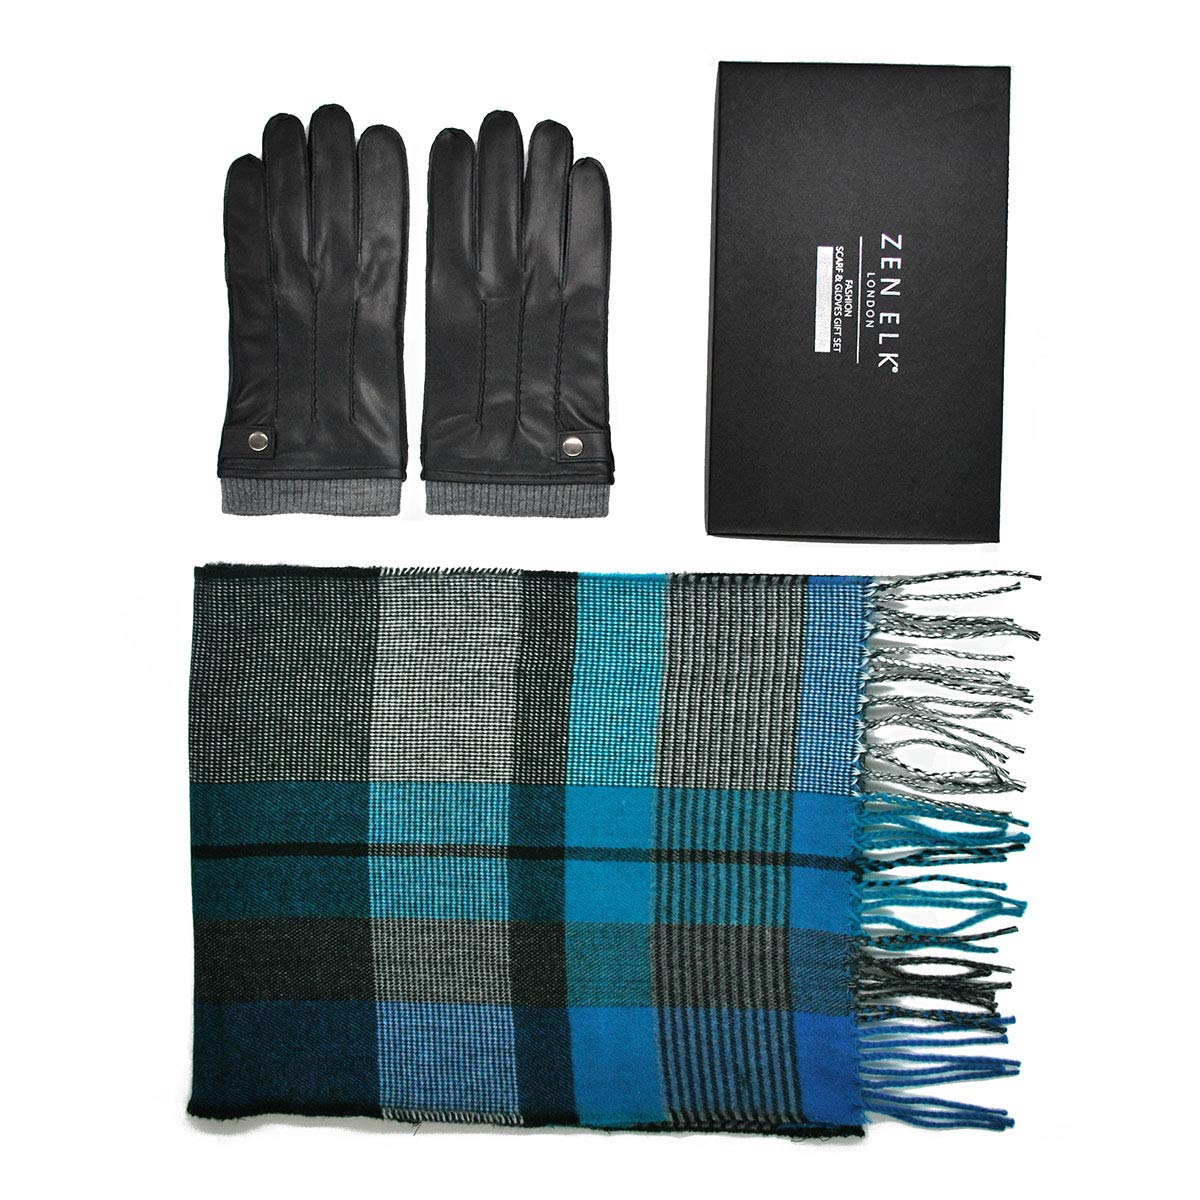 Men's Leather Gloves and Scarf Box Set #17 (M/L)